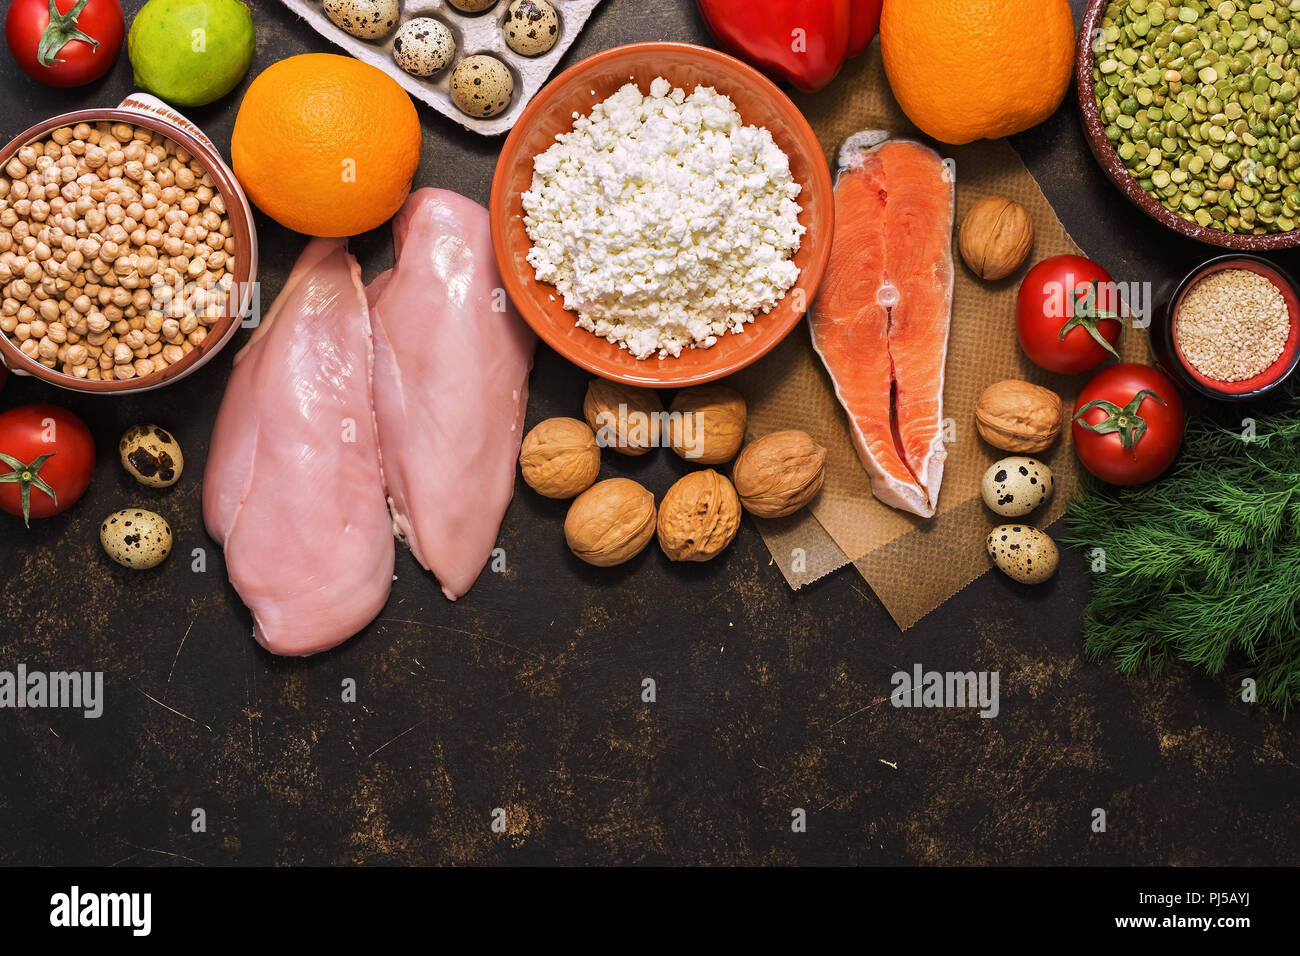 Healthy food on a dark background, salmon, chicken fillet, fruits, vegetables, cereals, cottage cheese. Top view, space for text. The concept of healthy eating. - Stock Image